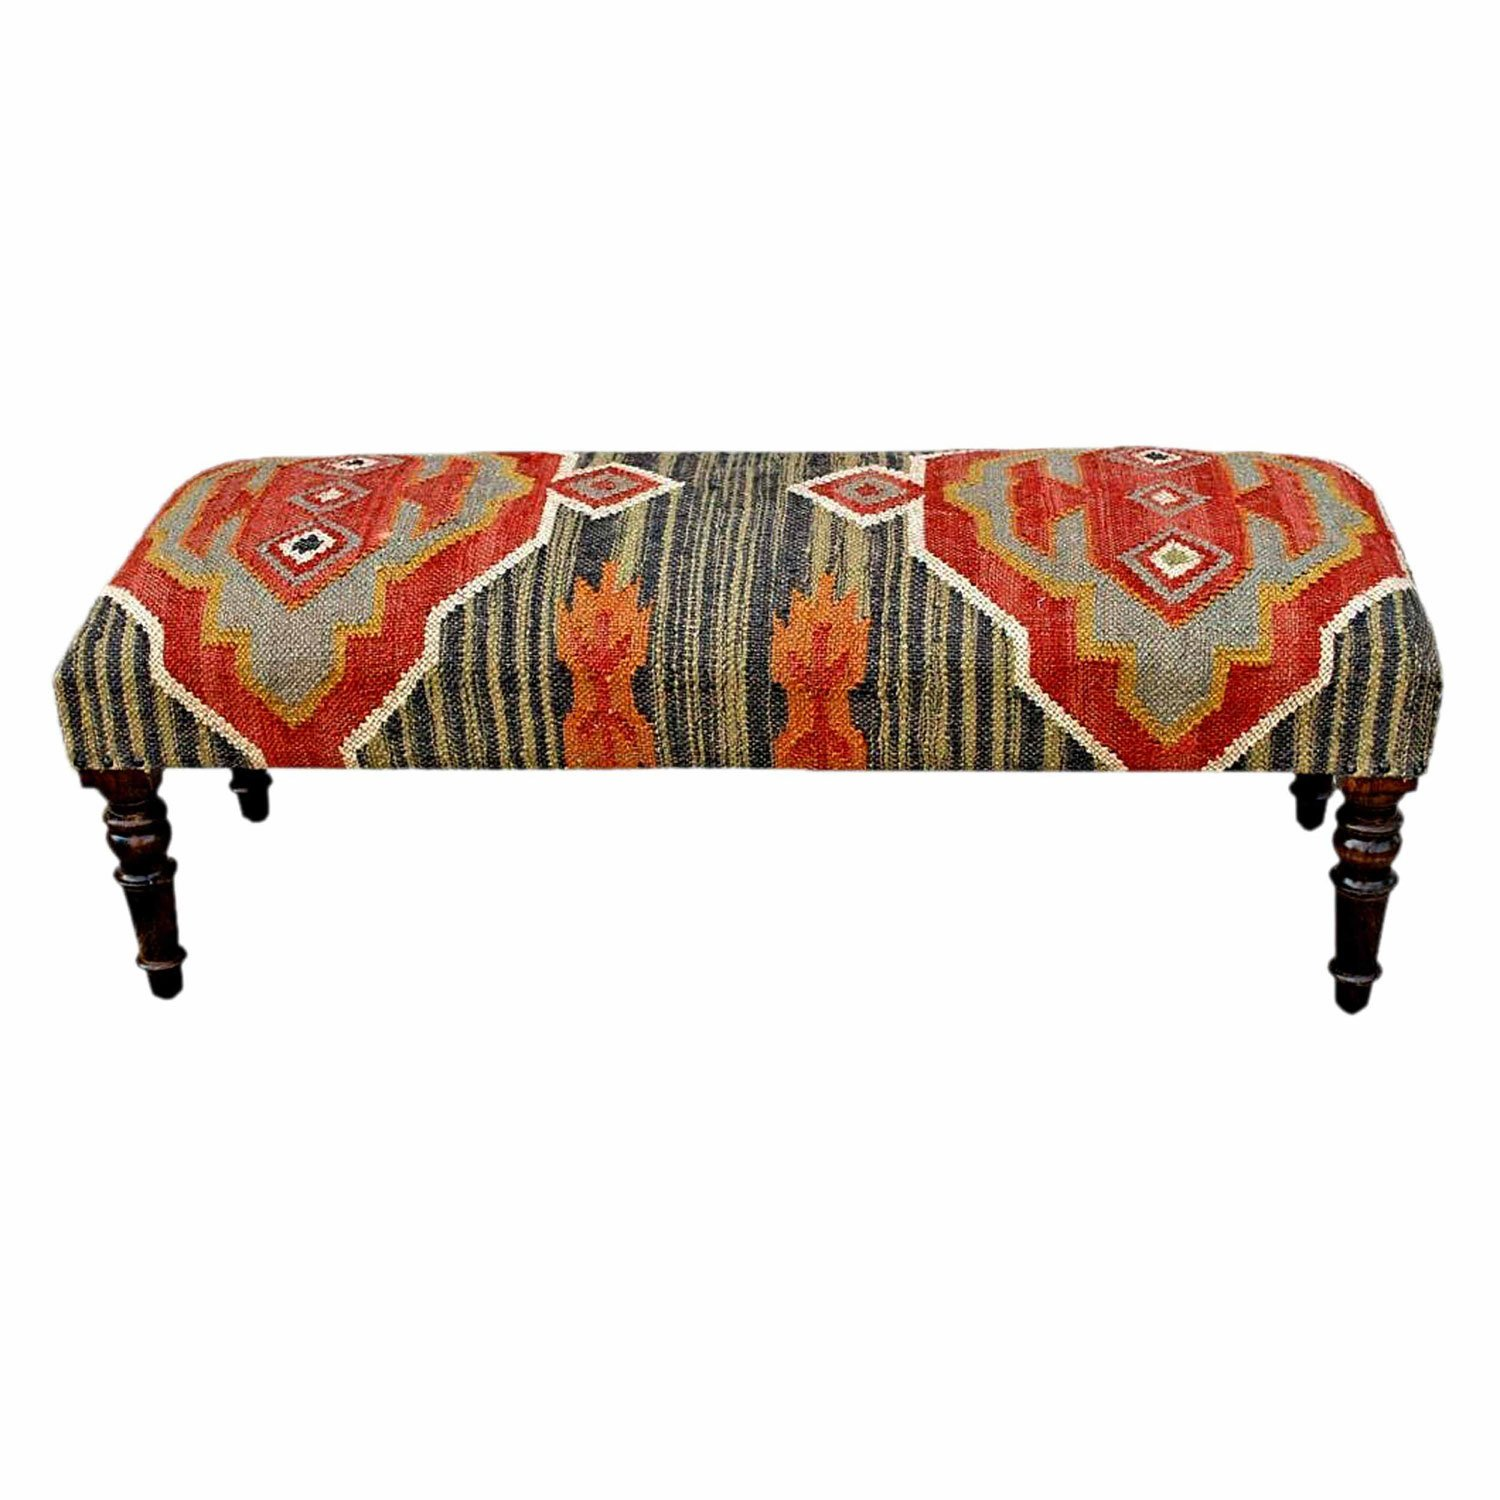 Homescapes Upholstered Kilim Bench Footstool or Rectangular Coffee Table Dark Red Handmade Solid Wood Frame with Traditional Hand woven Wool Rug Cover